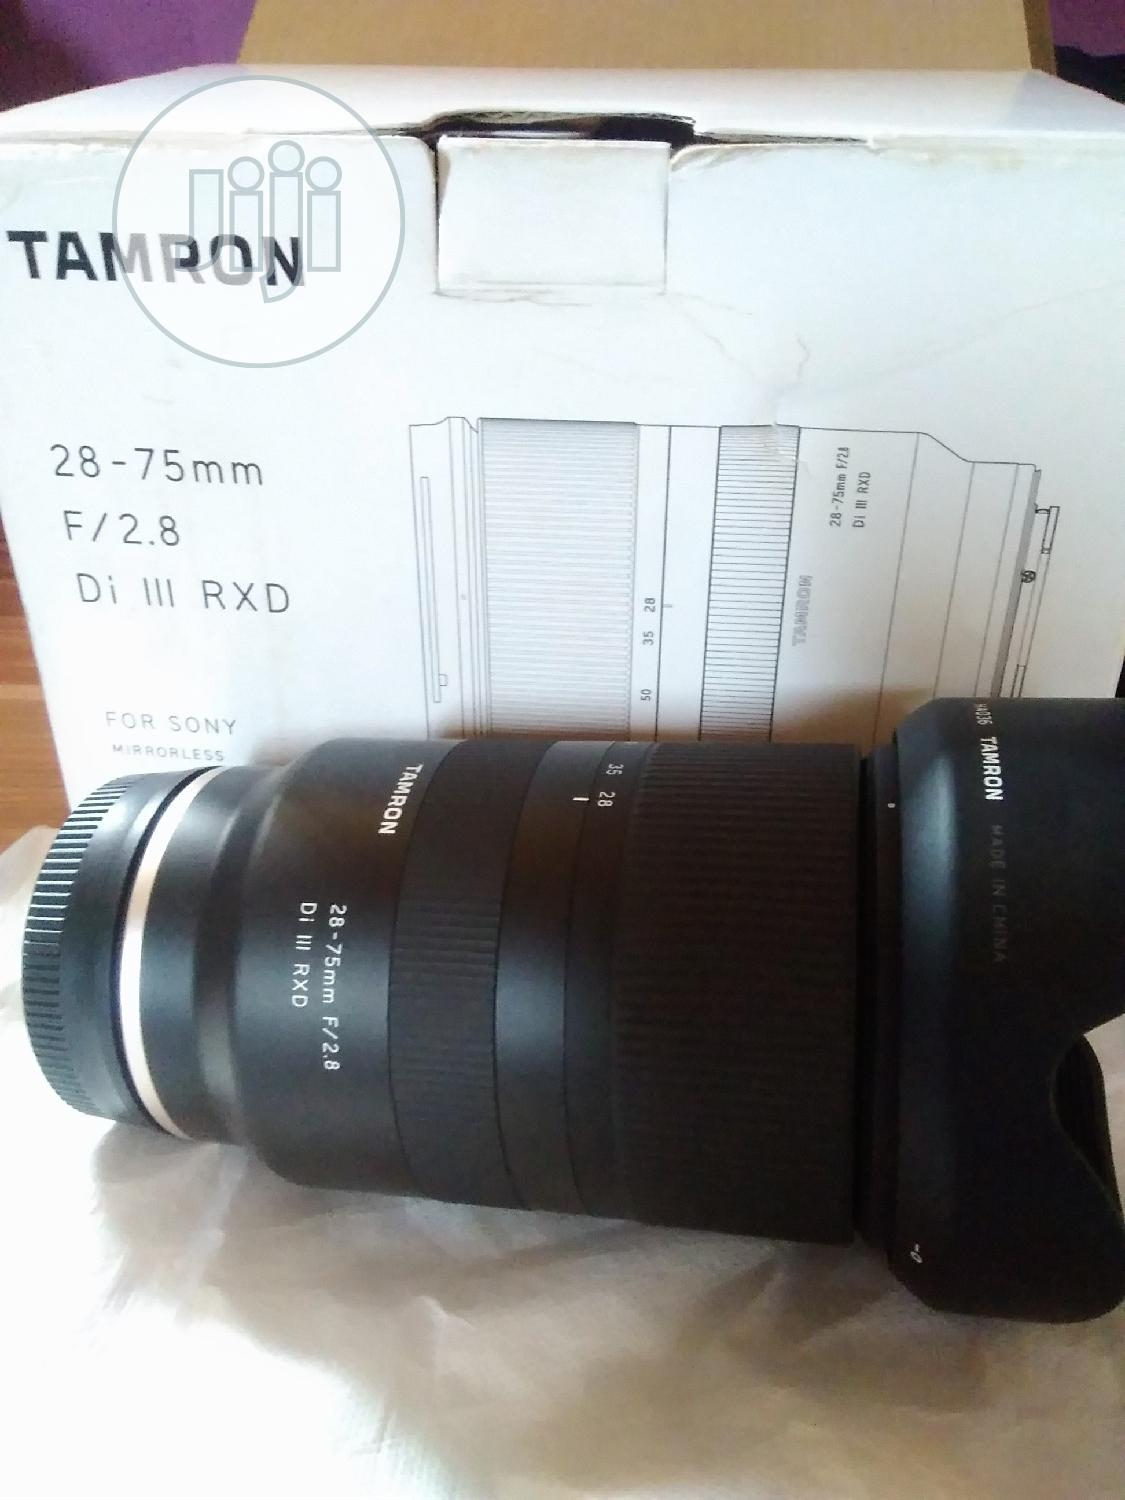 28 -75mm F2 .8 Tamron Lens for Sony